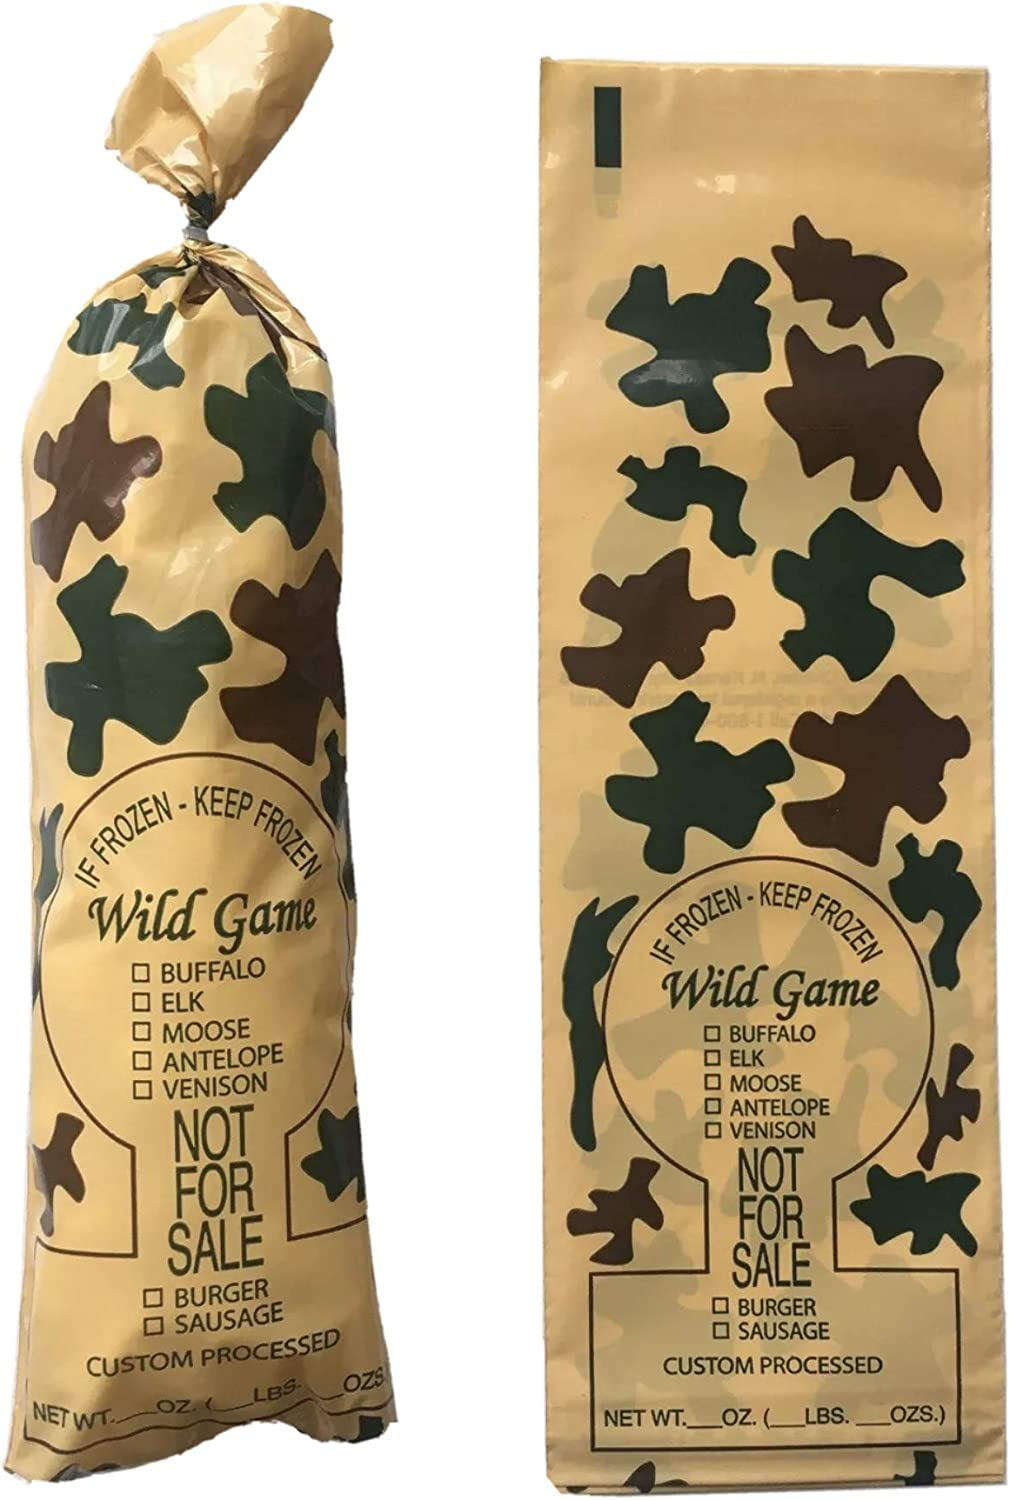 "Wild Game Freezer Bags, 2 lb.""Not for Sale"" (200)"